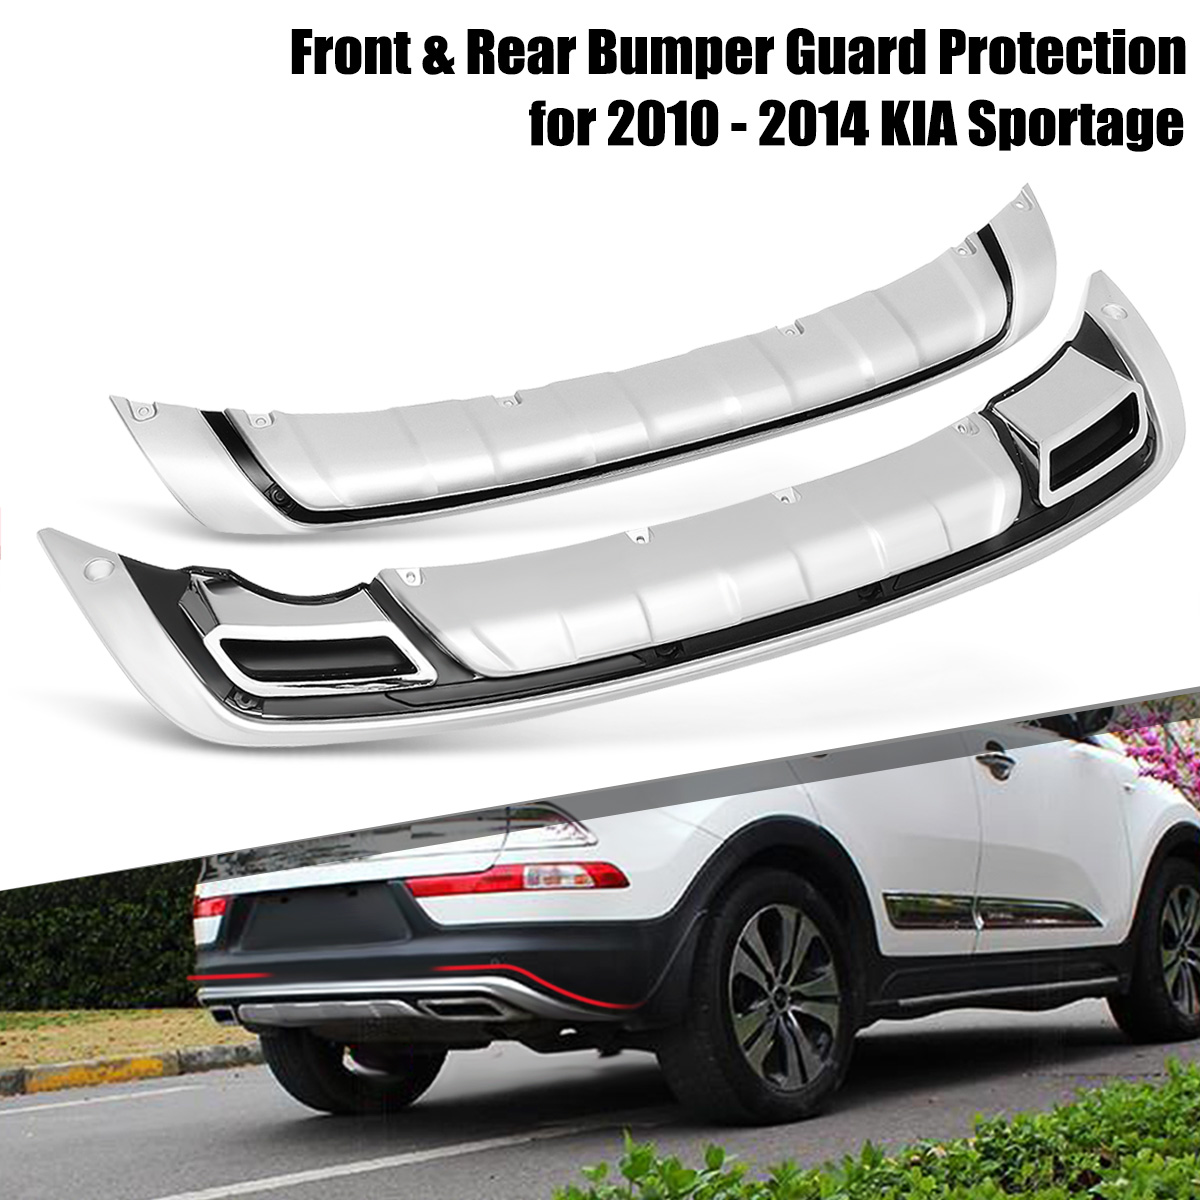 Car Front and Rear Bumper Guard Board Protection for KIA Sportage 2010-2014 Car Styling Exterior Accessories decoration protective guard rubber bar for car front and rear bumper black 2 pcs